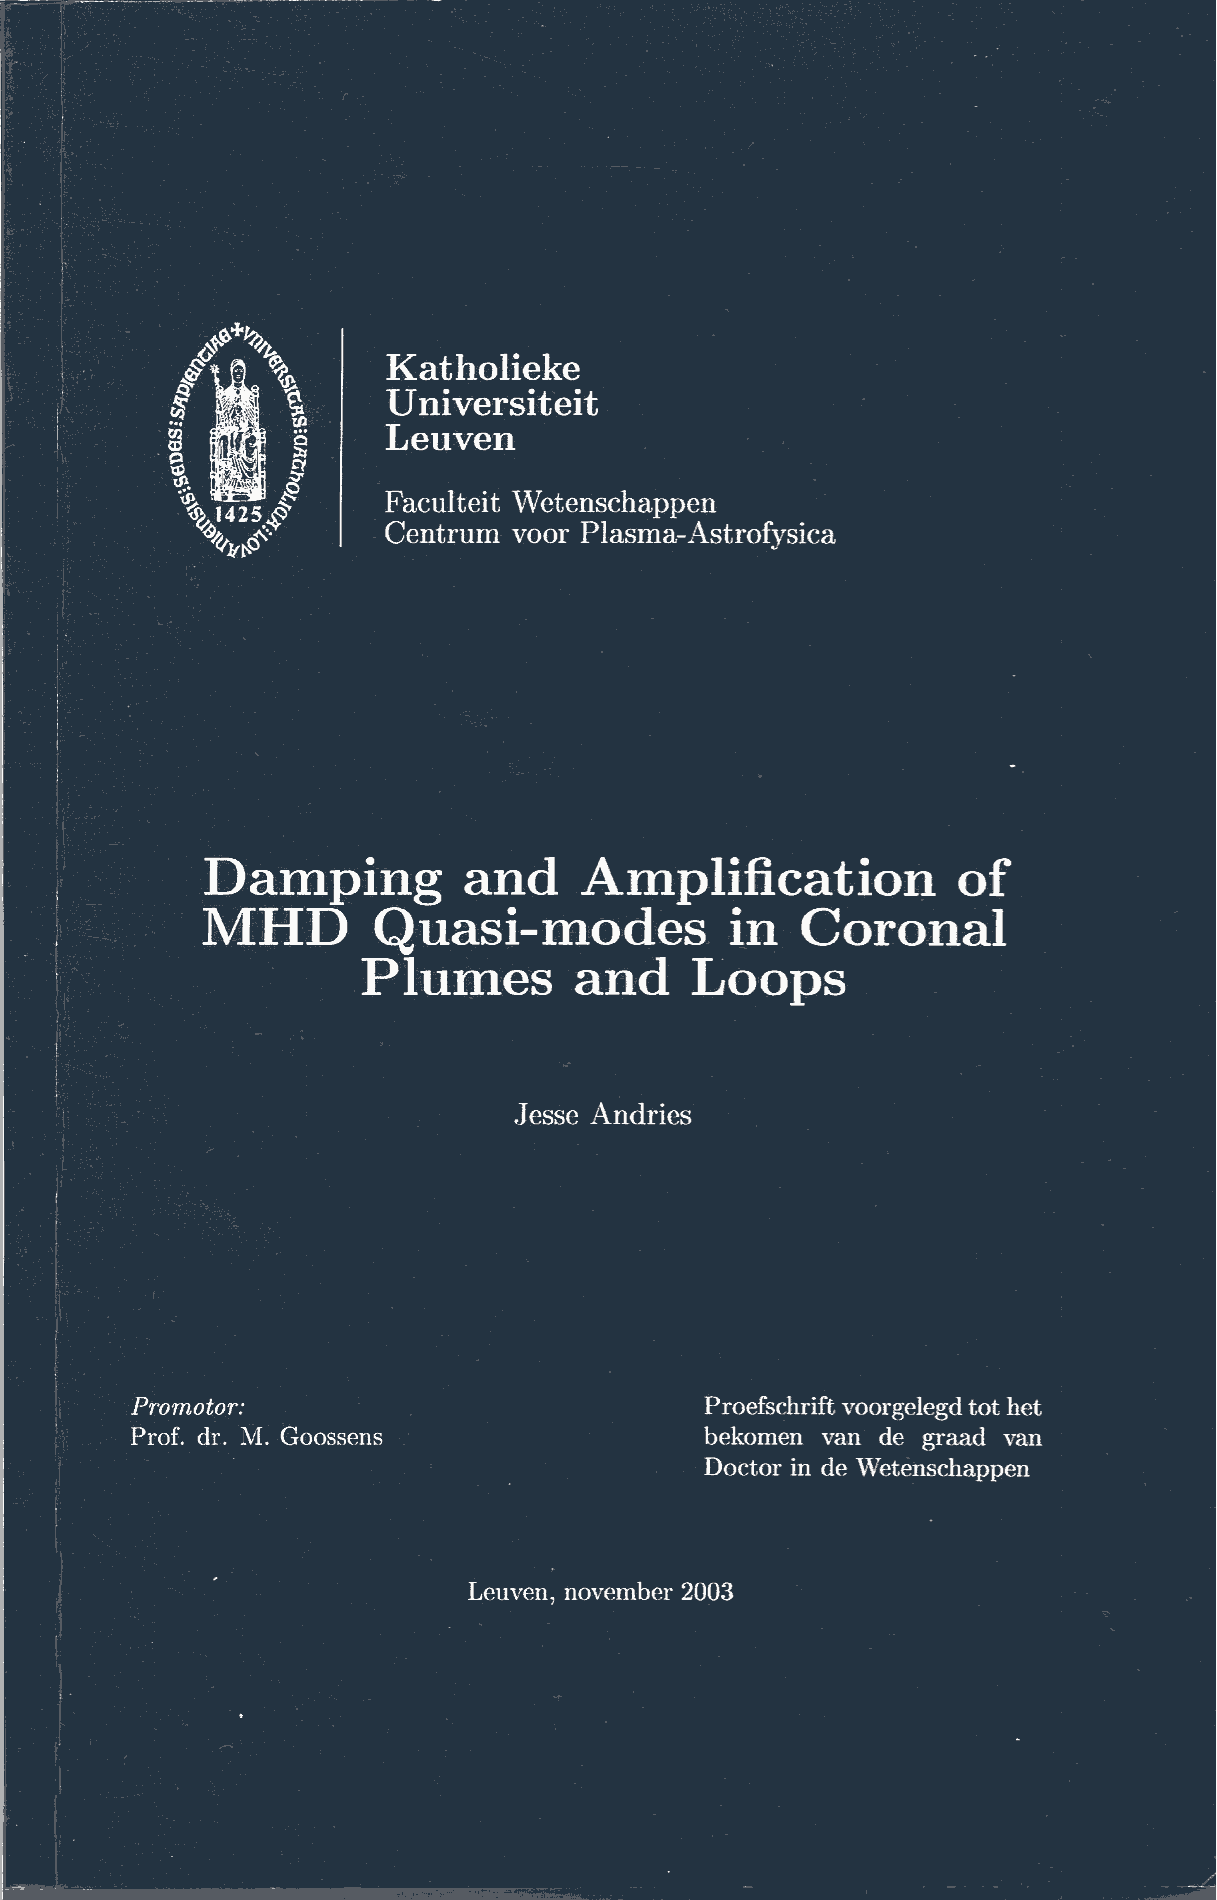 Kuleuven phd thesis